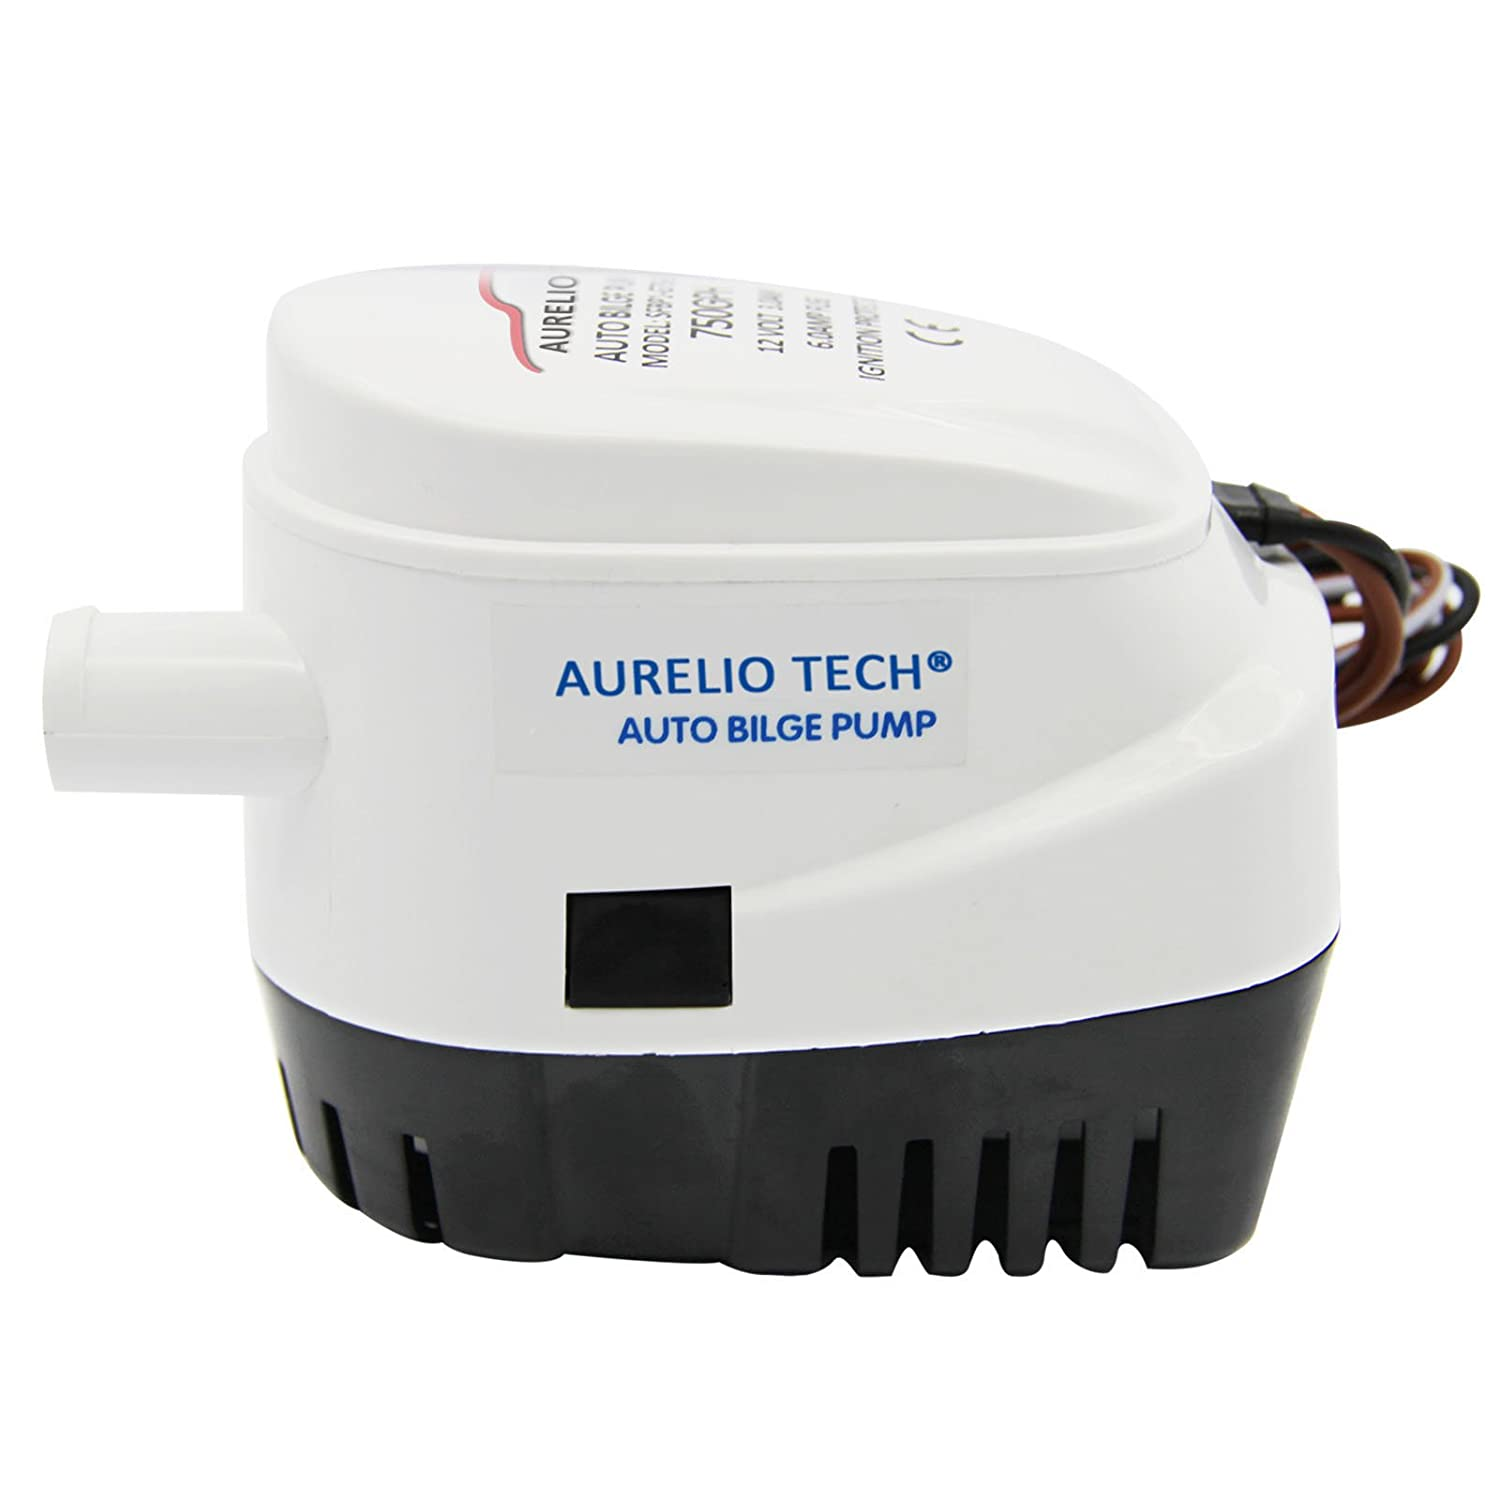 61X30Rmk3NL._SL1500_ amazon com aurelio tech 12v automatic submersible boat bilge seaflo bilge pump wiring diagram at gsmportal.co